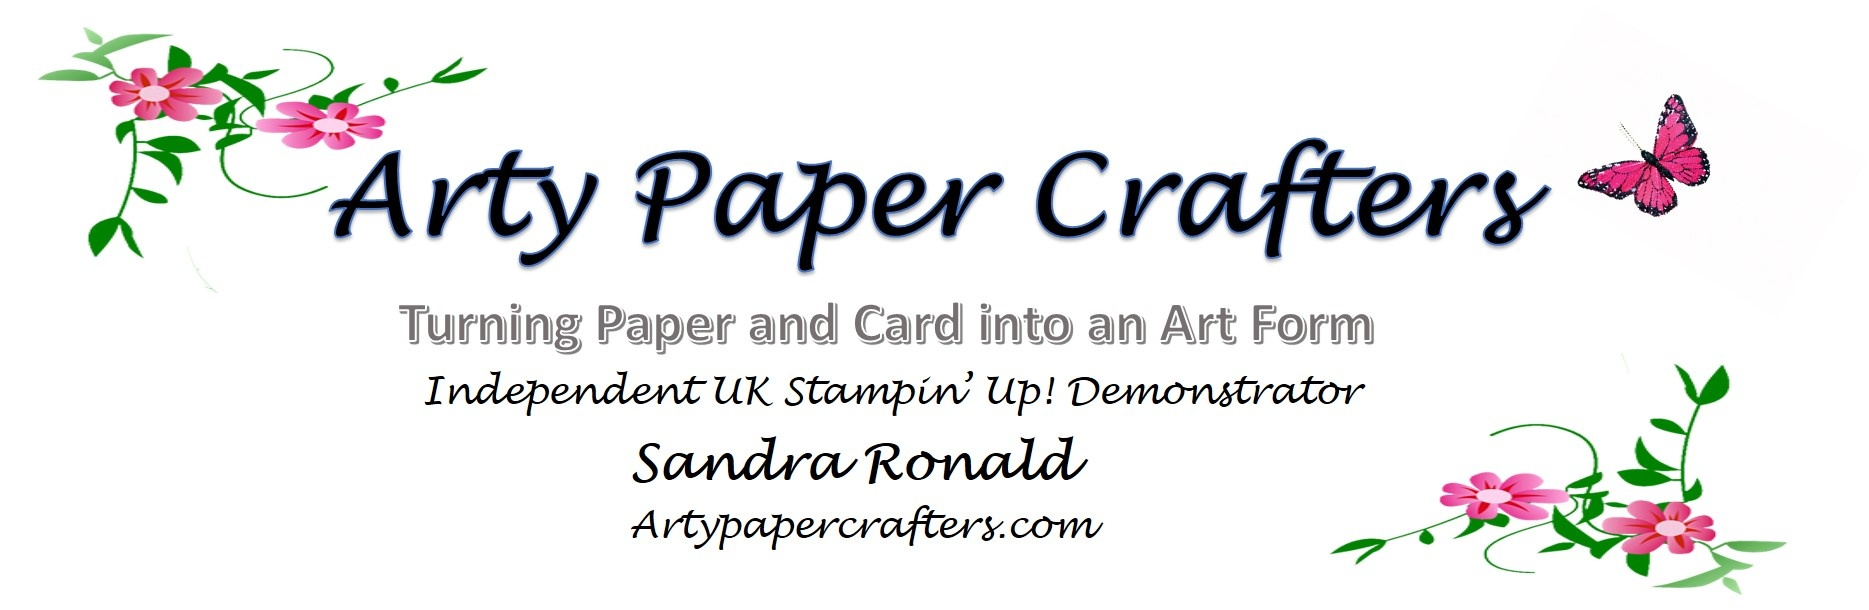 Arty Paper Crafters